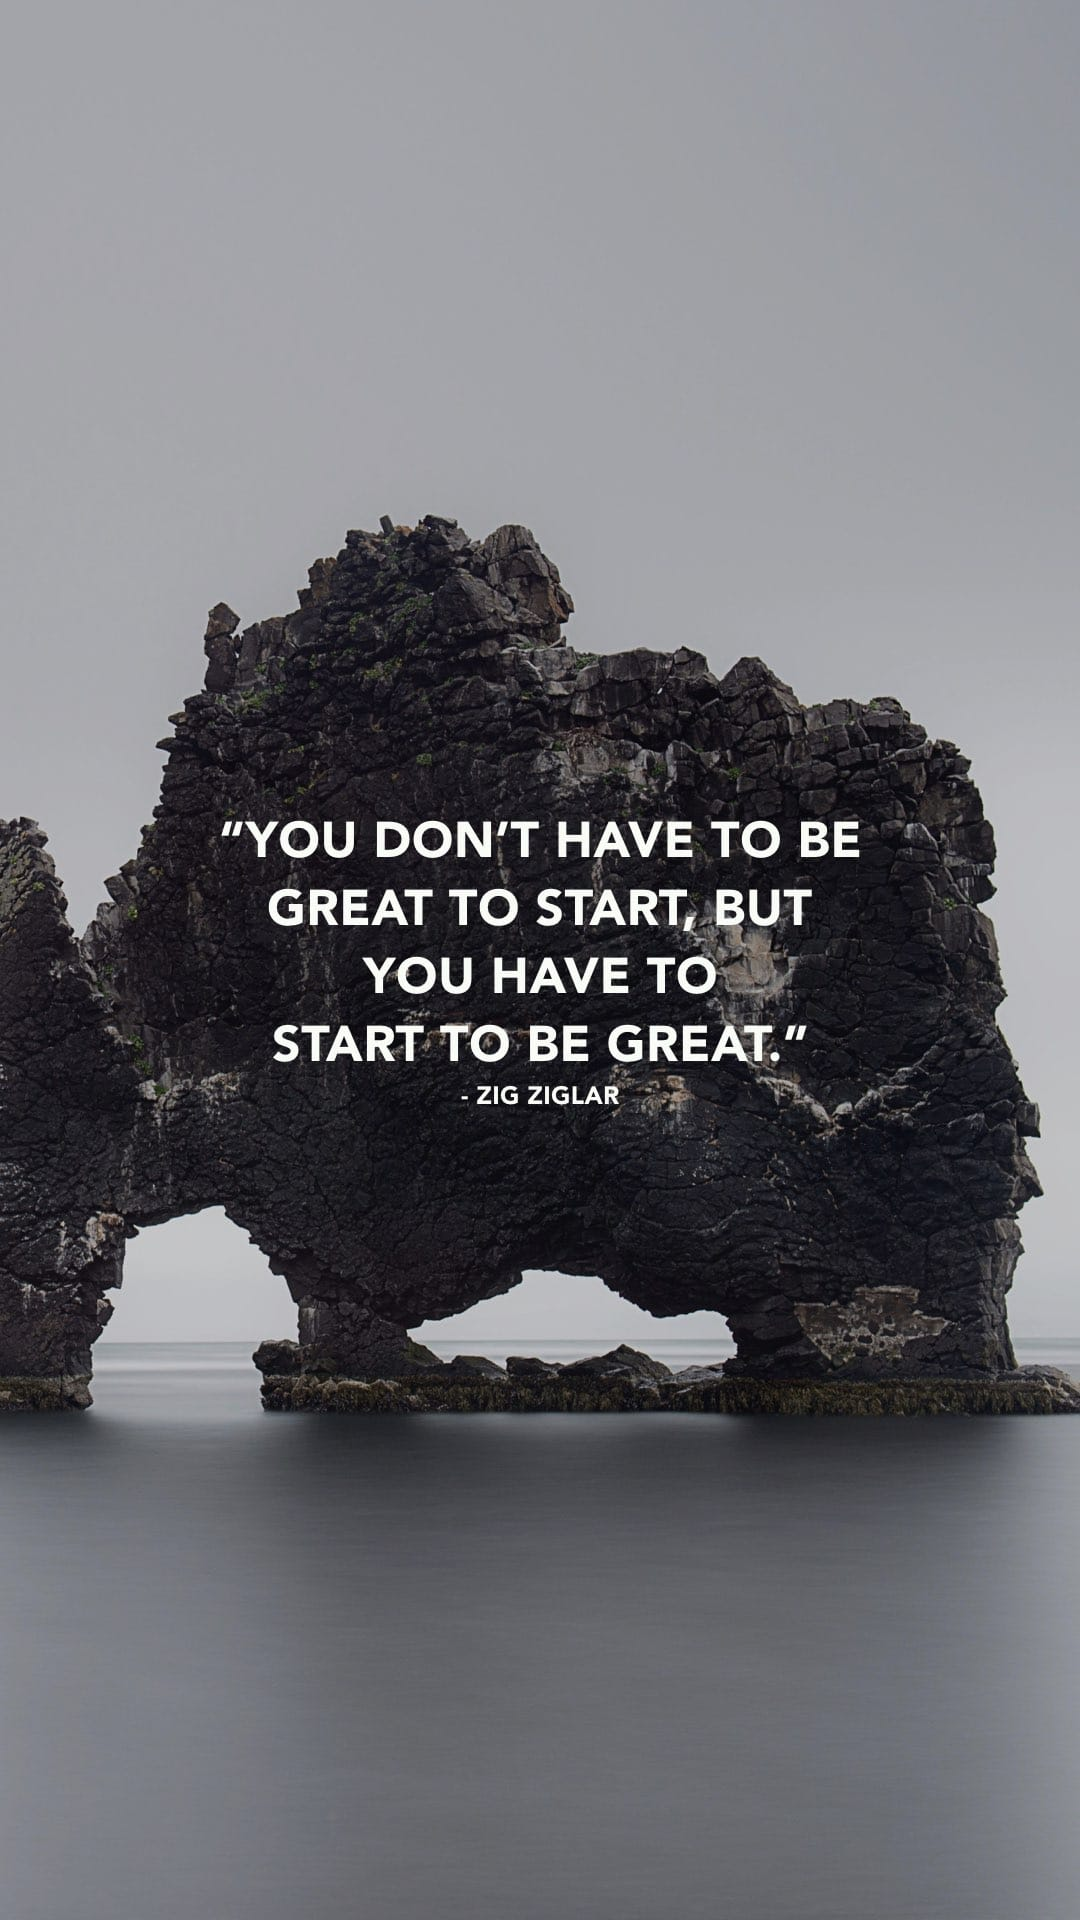 "[Image] Phone wallpaper: ""You don't need to be great to start, but you need to start to be great."" Please, share with me ONE small goal you're going to accomplish this week that will take you closer to success."